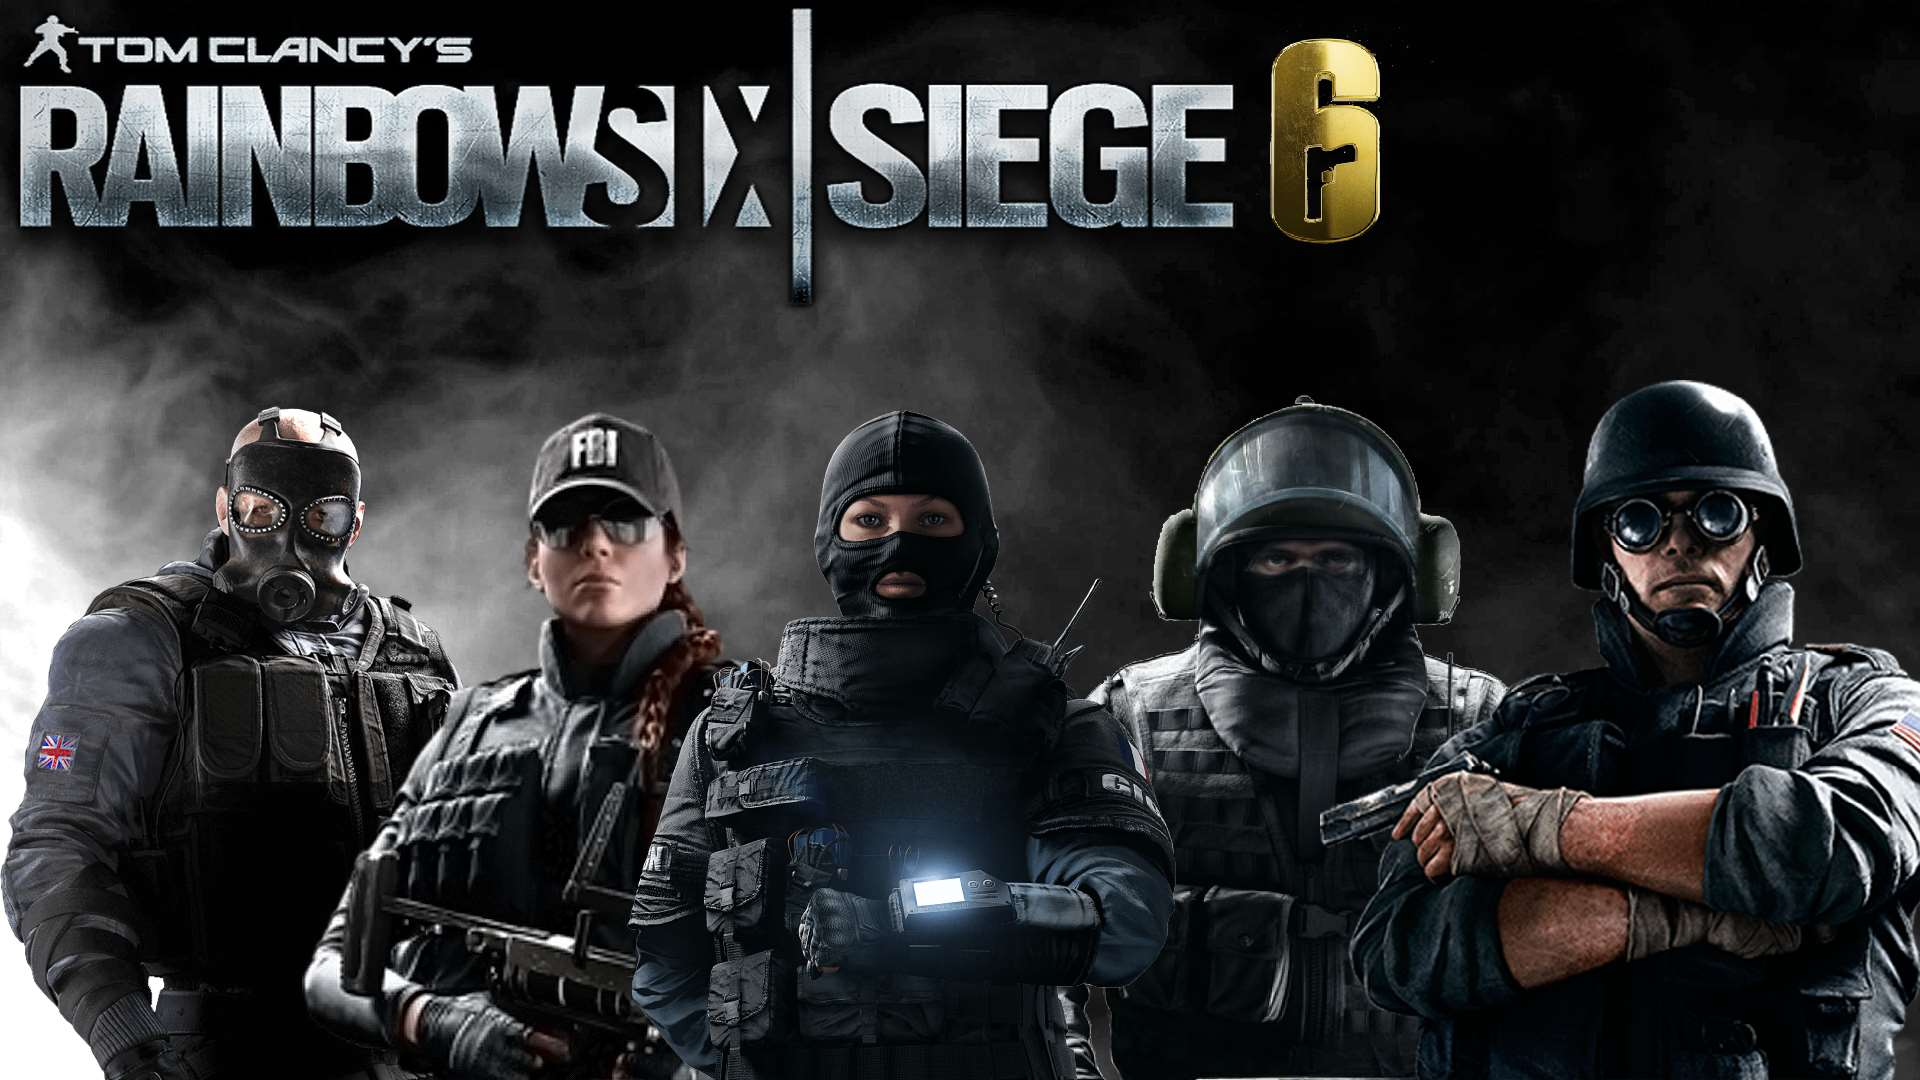 Tom Clancy's Rainbow Six Siege Full PC Game Download